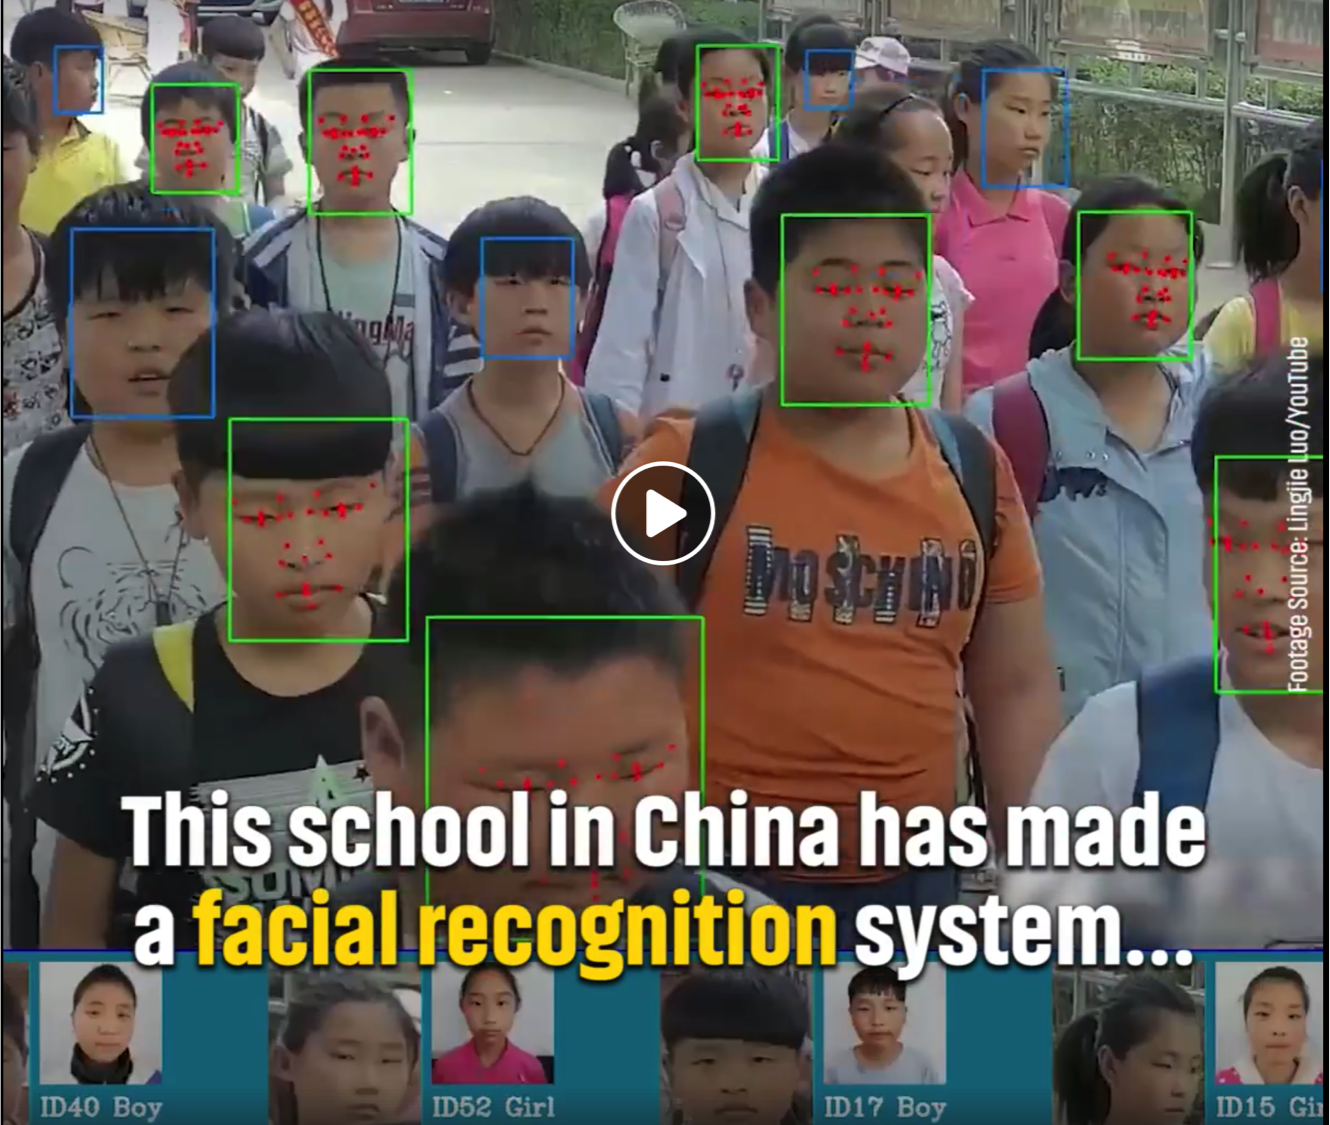 abd1feb8d5b Let s up the stakes with this face recognition system used in China. It  recognises student faces instantly